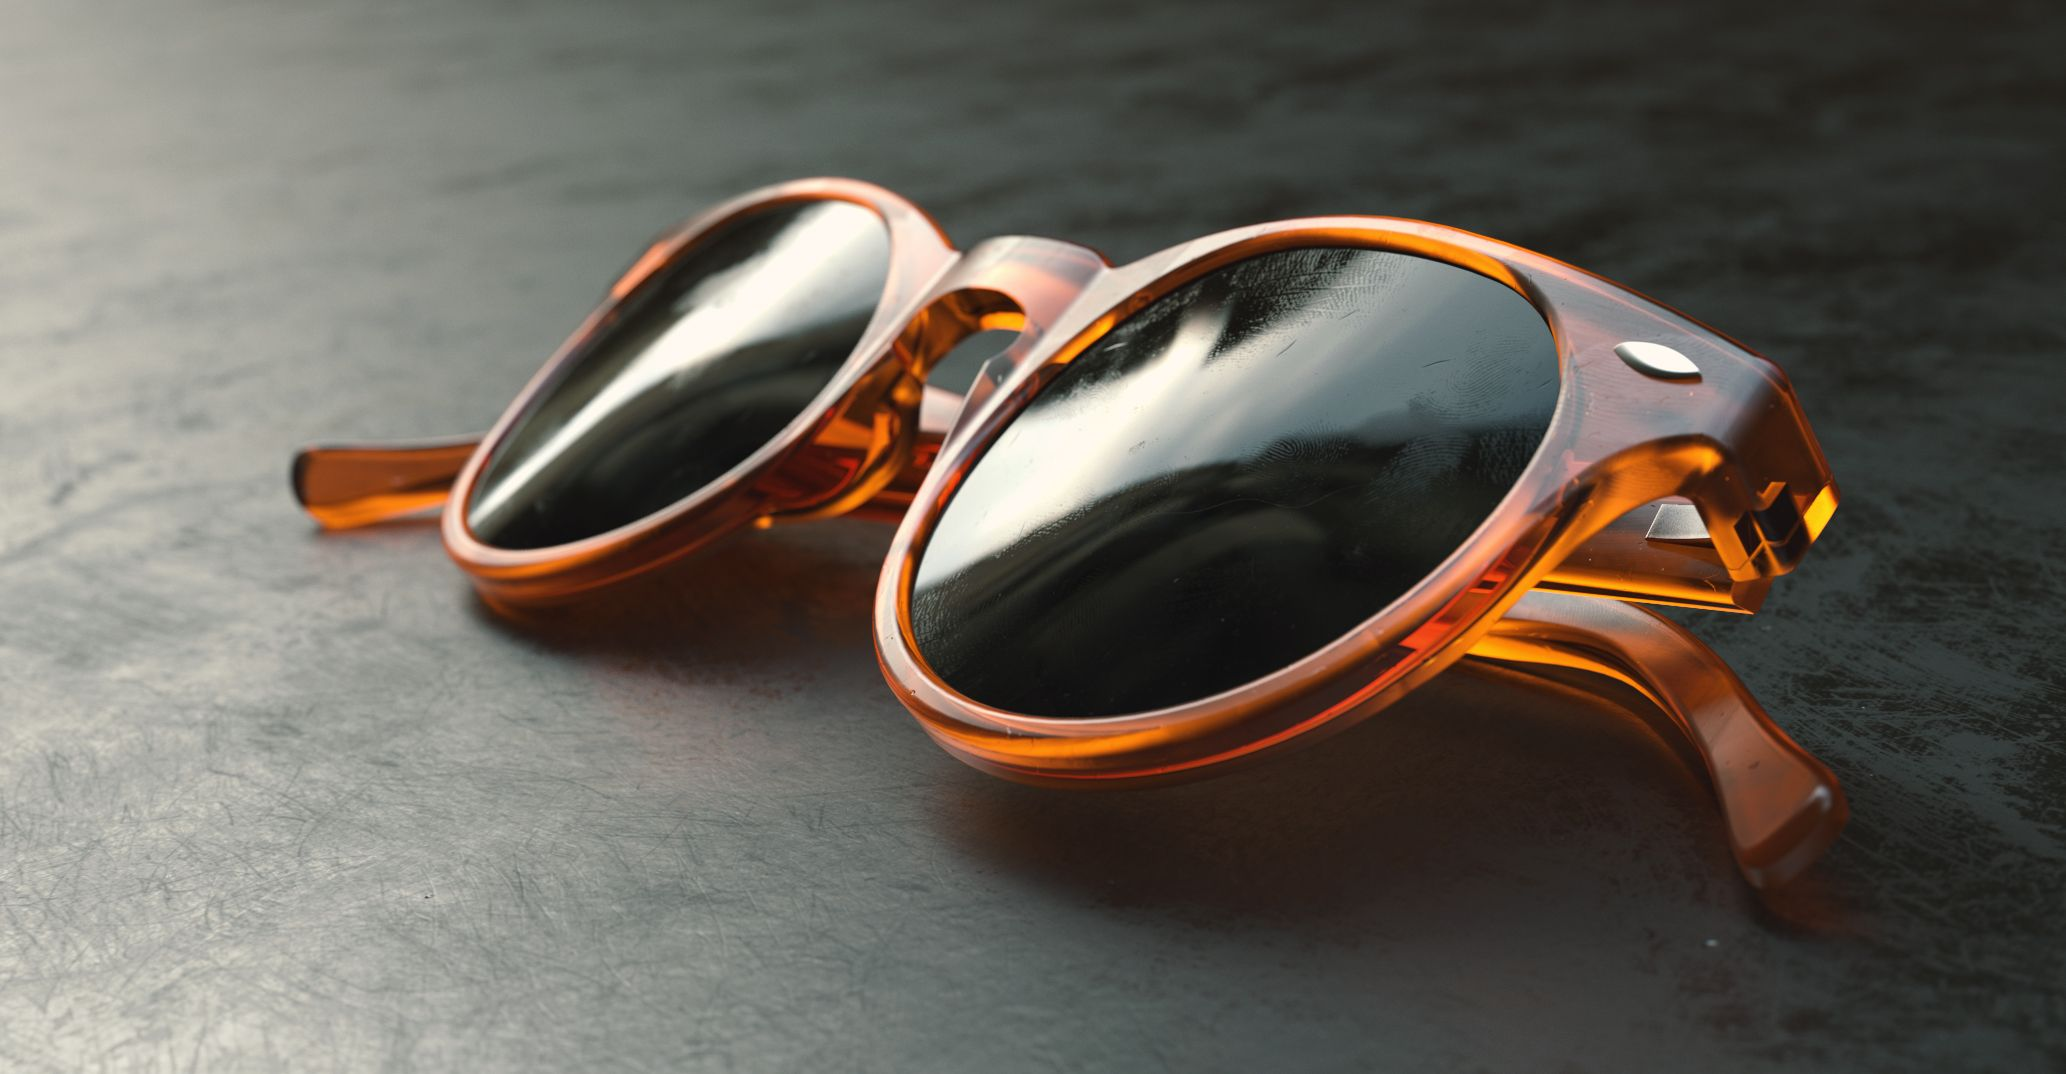 Sunglasses rendered in KeyShot by Mikael Prous using the